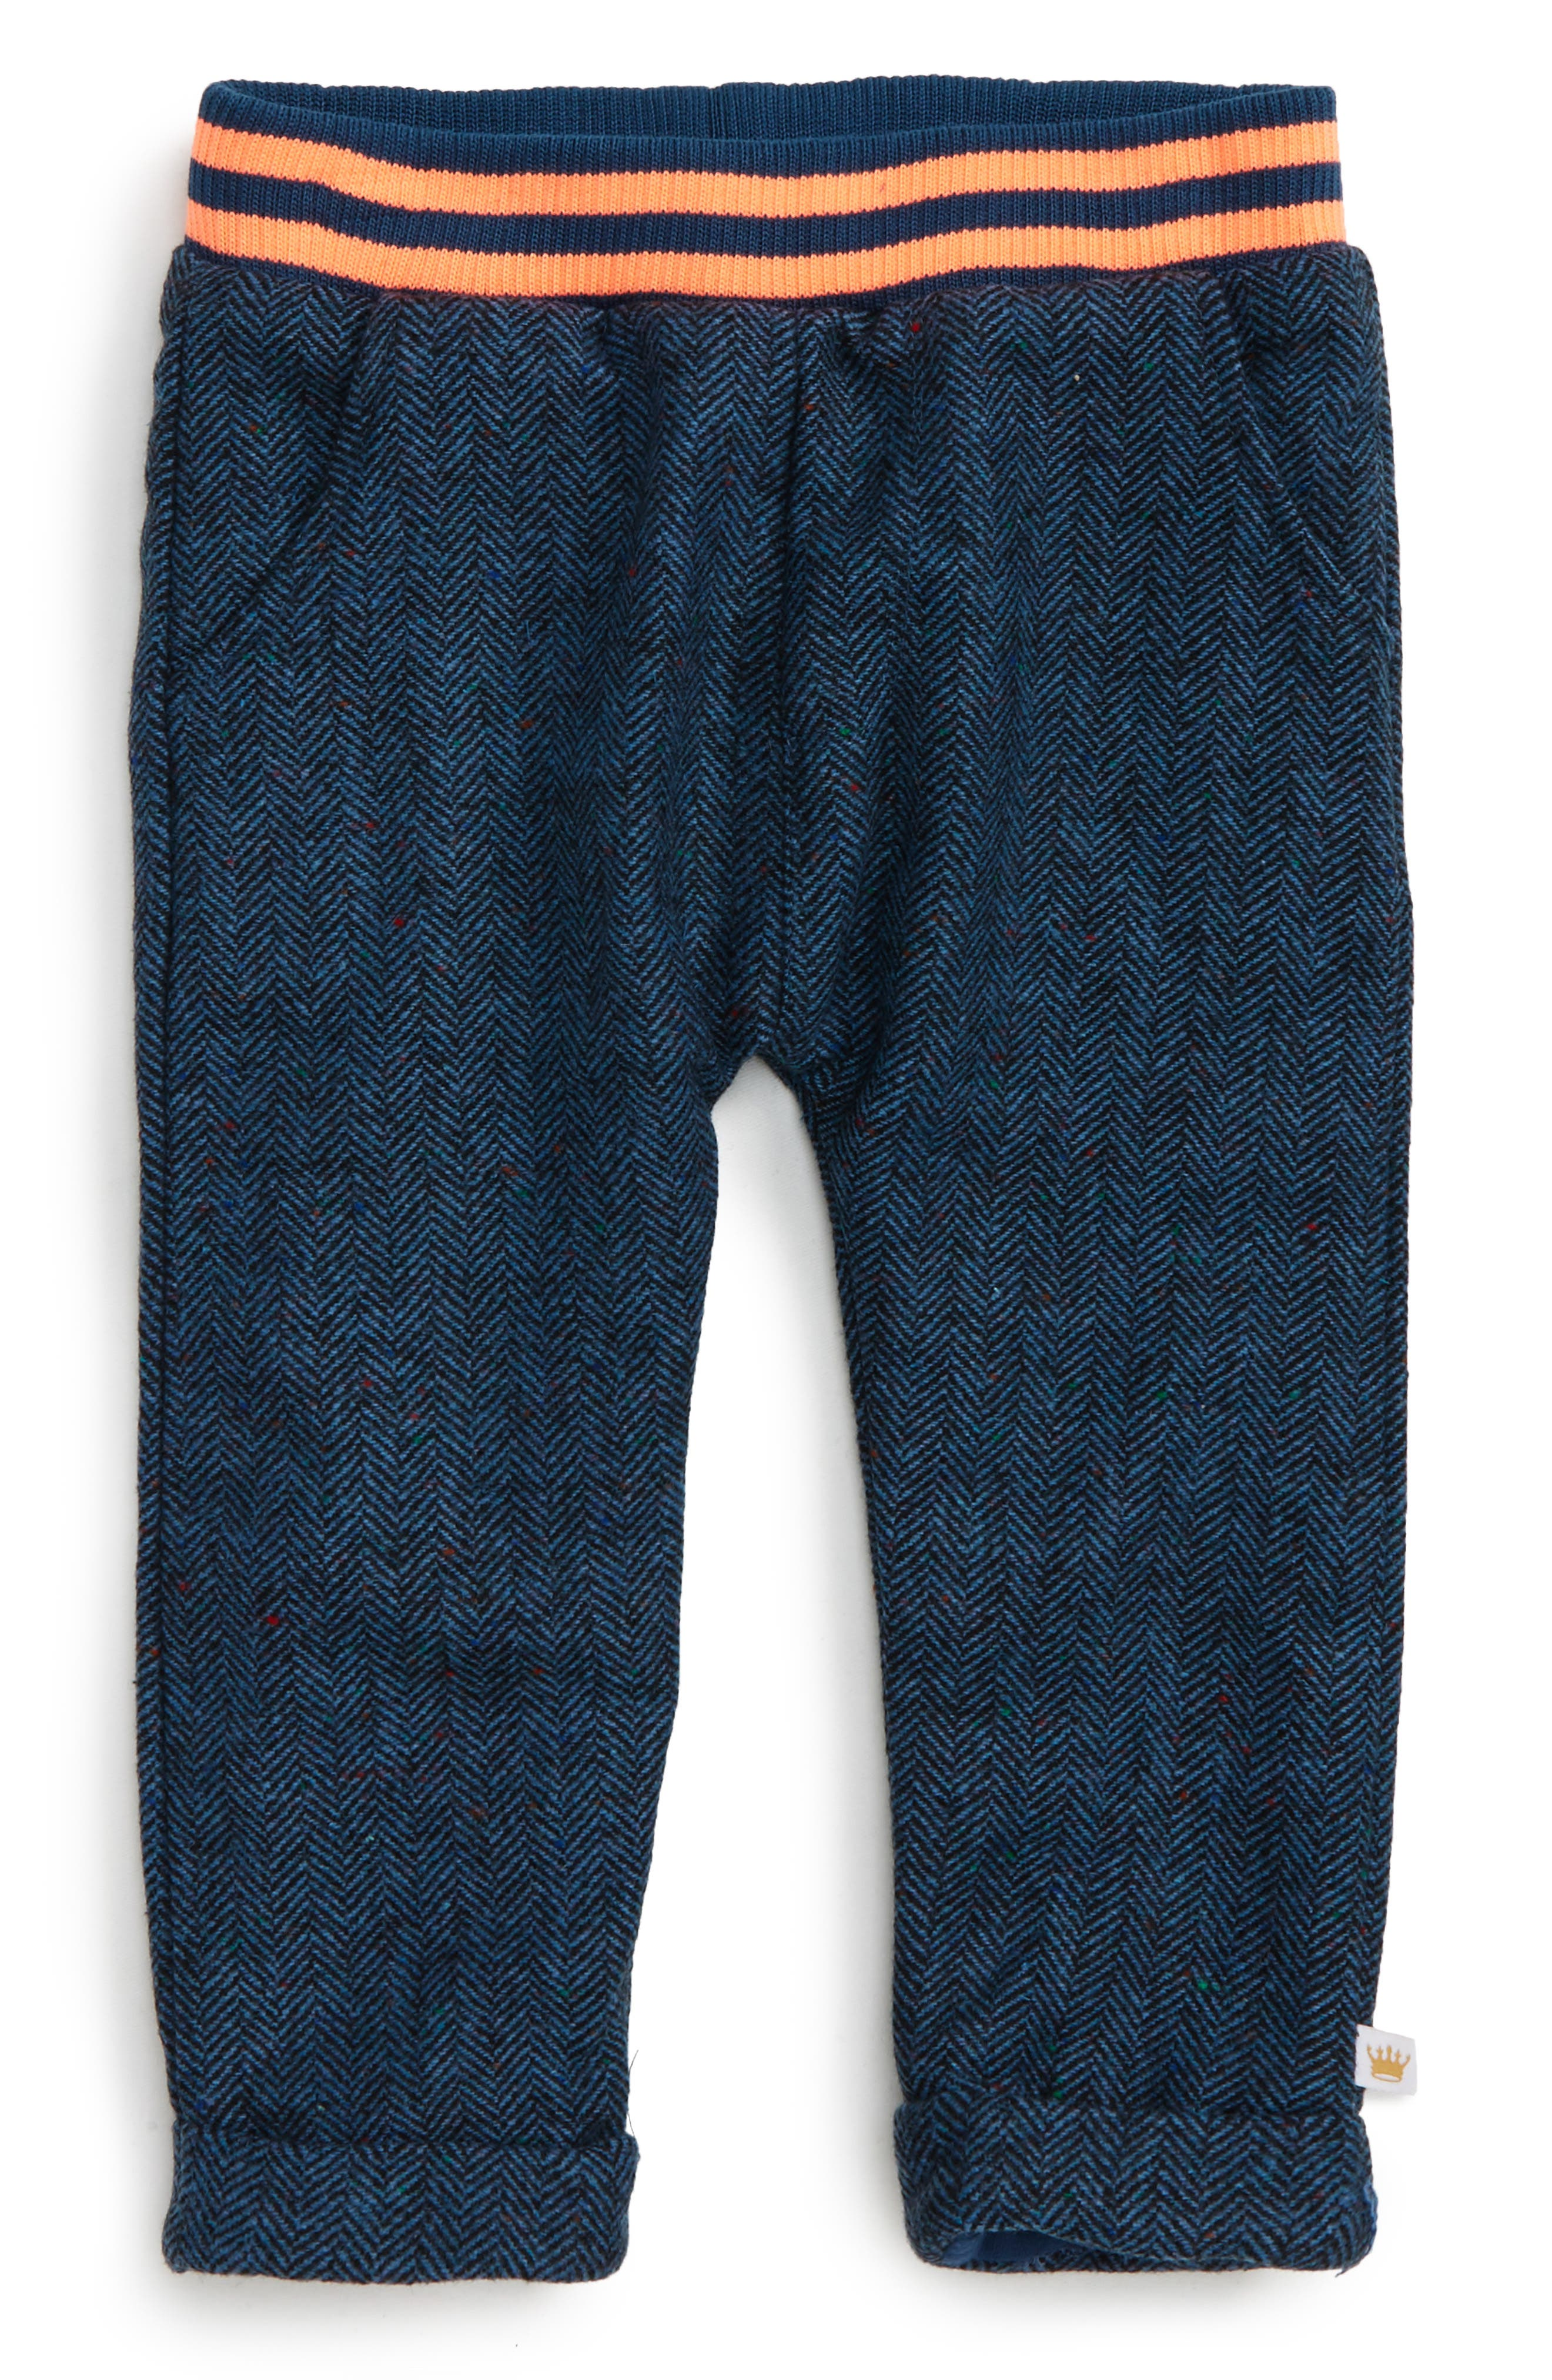 Alternate Image 1 Selected - Rosie Pope Twill Sweatpants (Baby Boys)